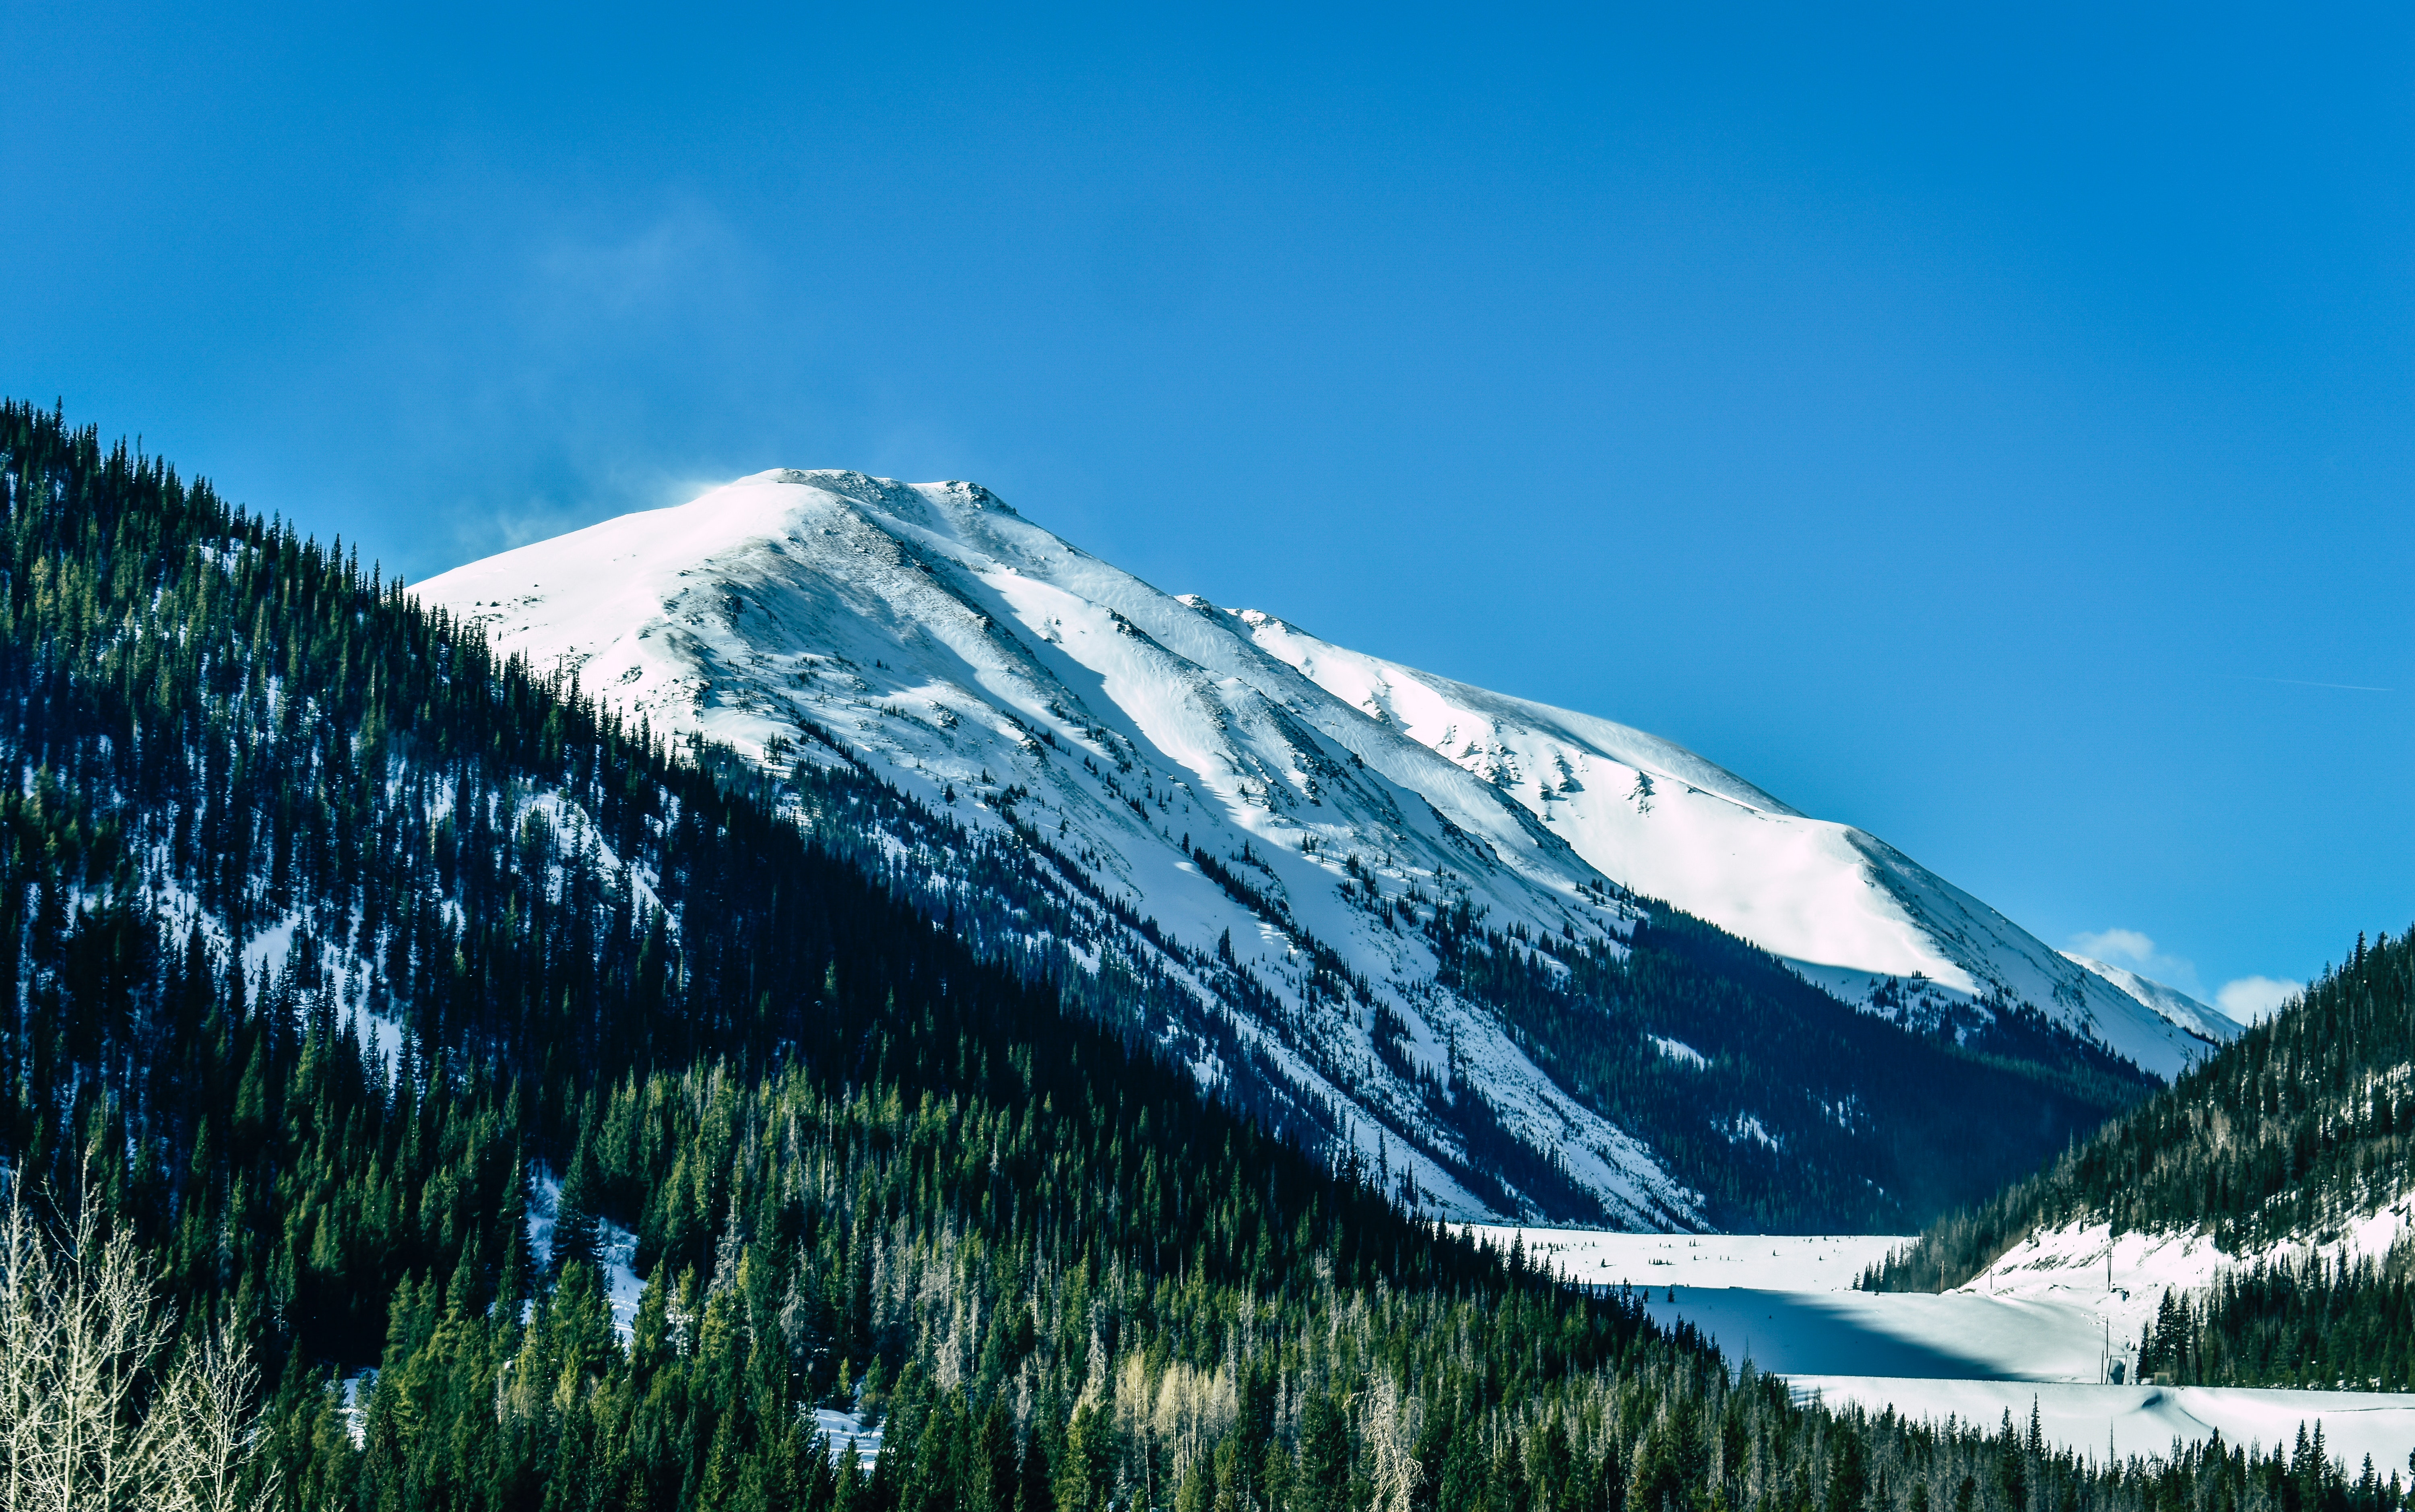 snow capped mountains daylight 1574939571 - Snow Capped Mountains Daylight -